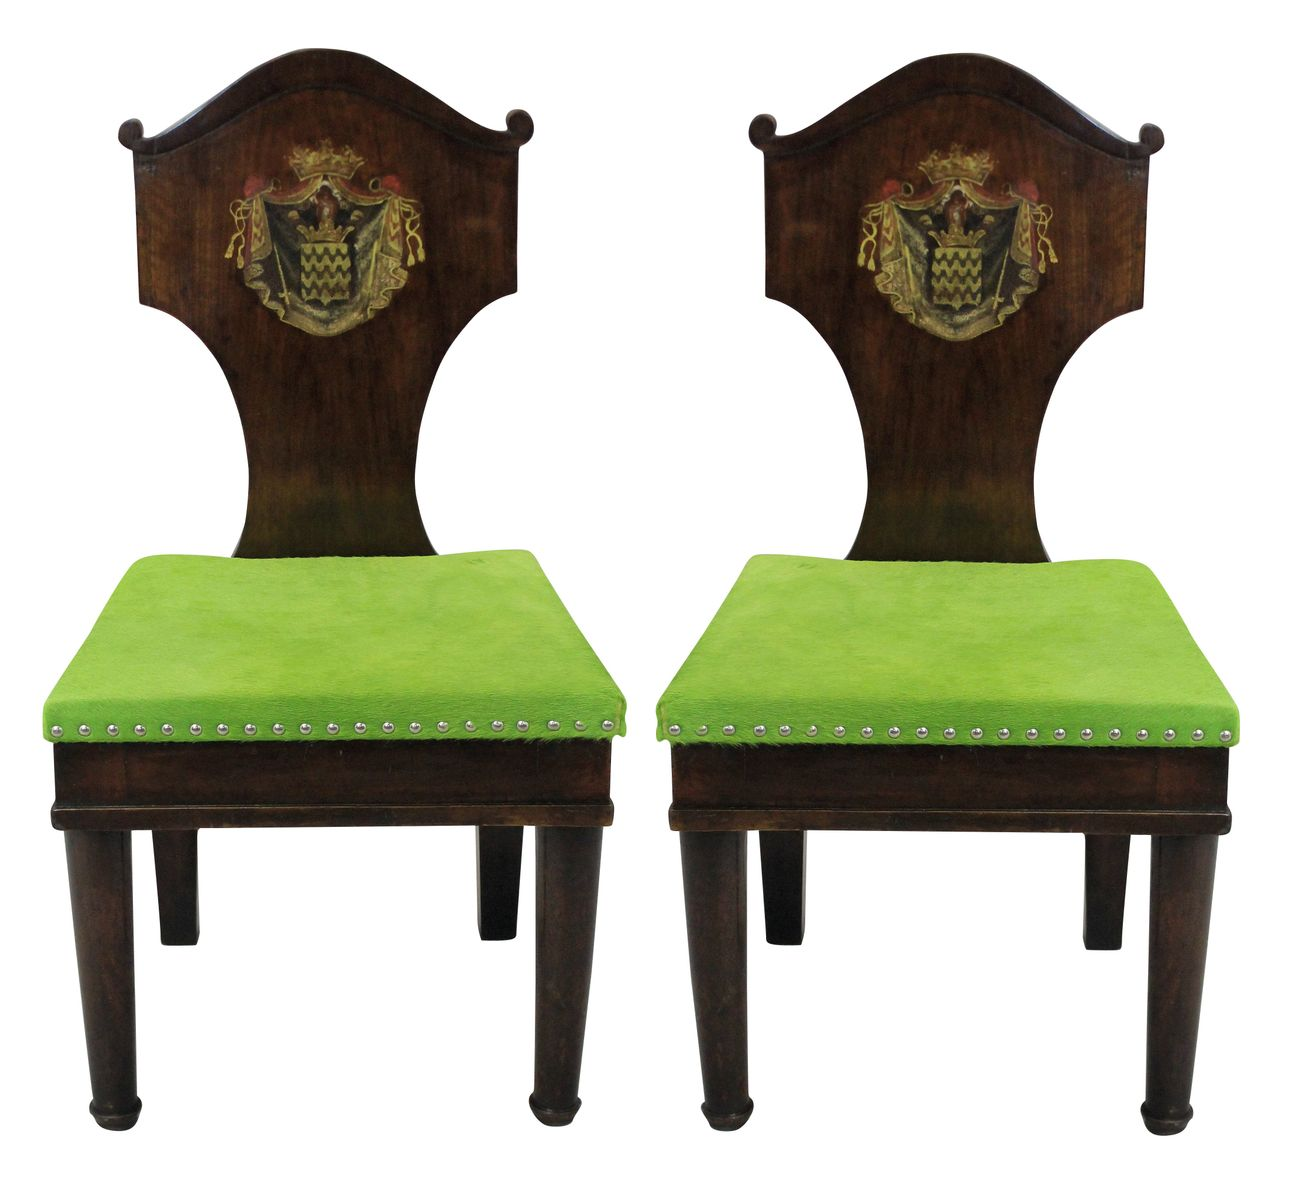 Antique Mahogany Hall Chairs, 1780s - Antique Mahogany Hall Chairs, 1780s For Sale At Pamono